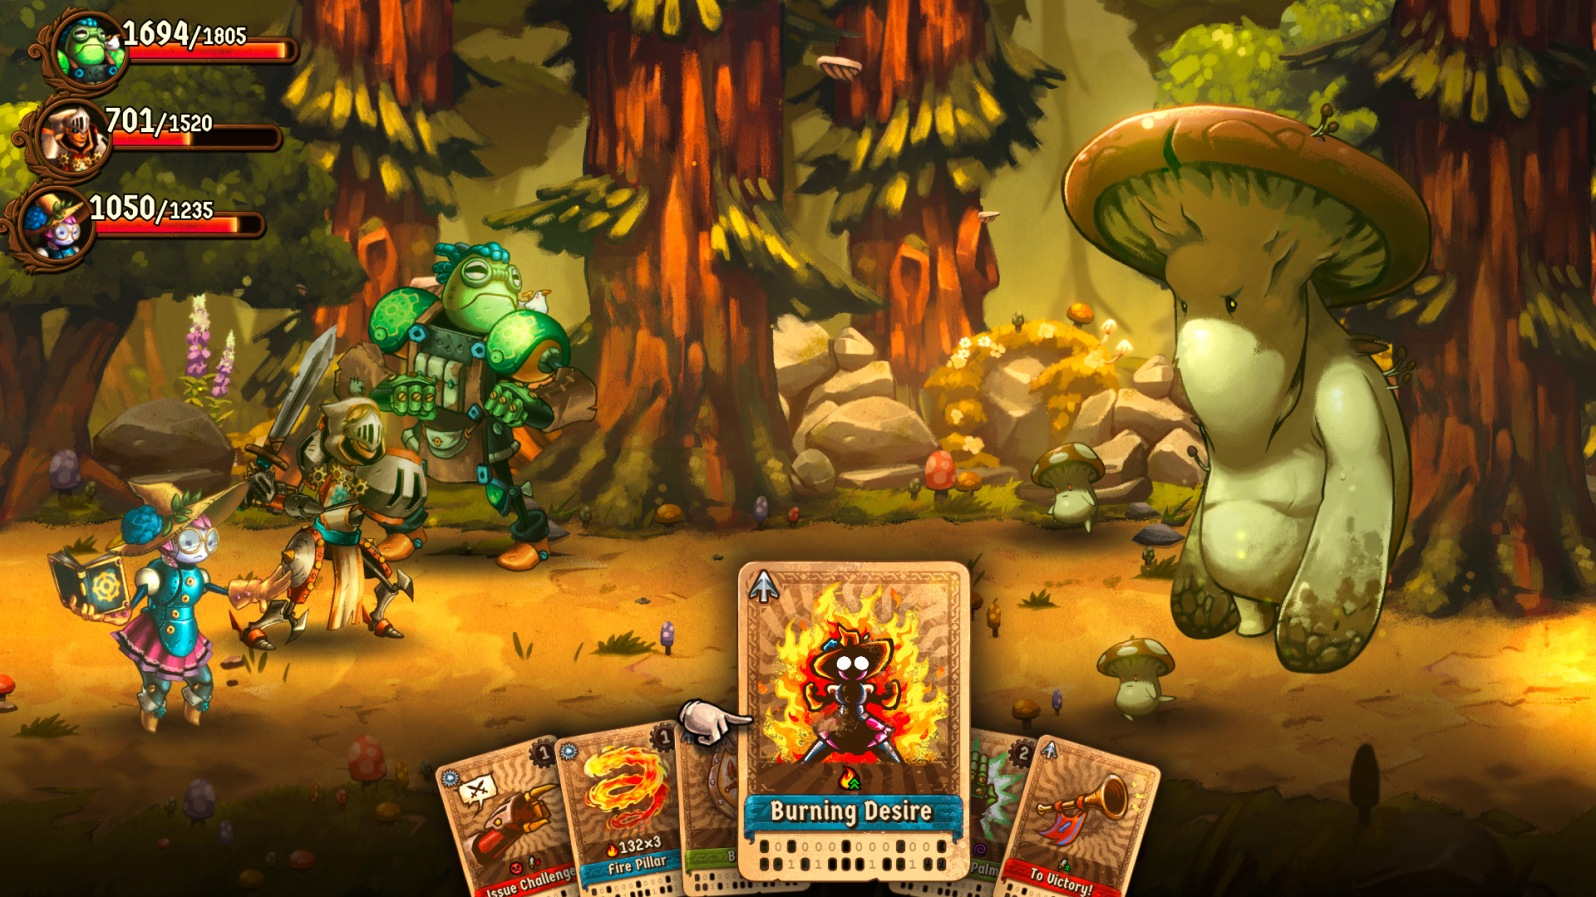 Quelle: imageform.se - SteamWorld Quest - Pilz